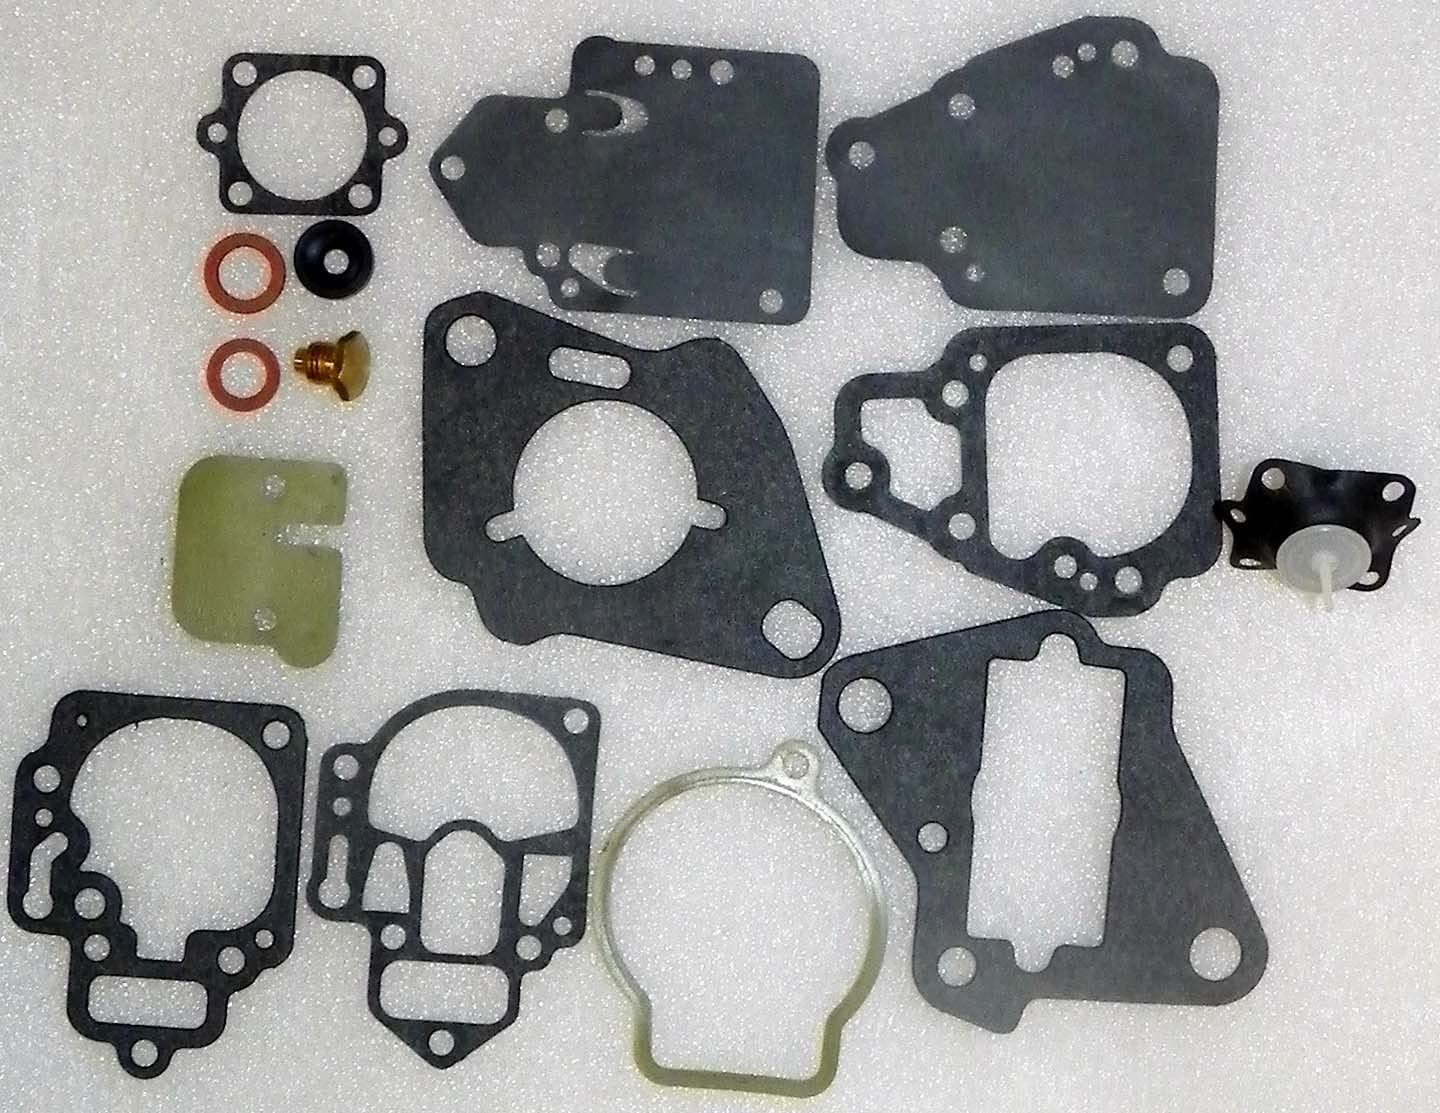 MERCURY Complete Carburetor Kit 9.9 Hp A197112-Up WSM 600-05 OEM# 1395-9761-1